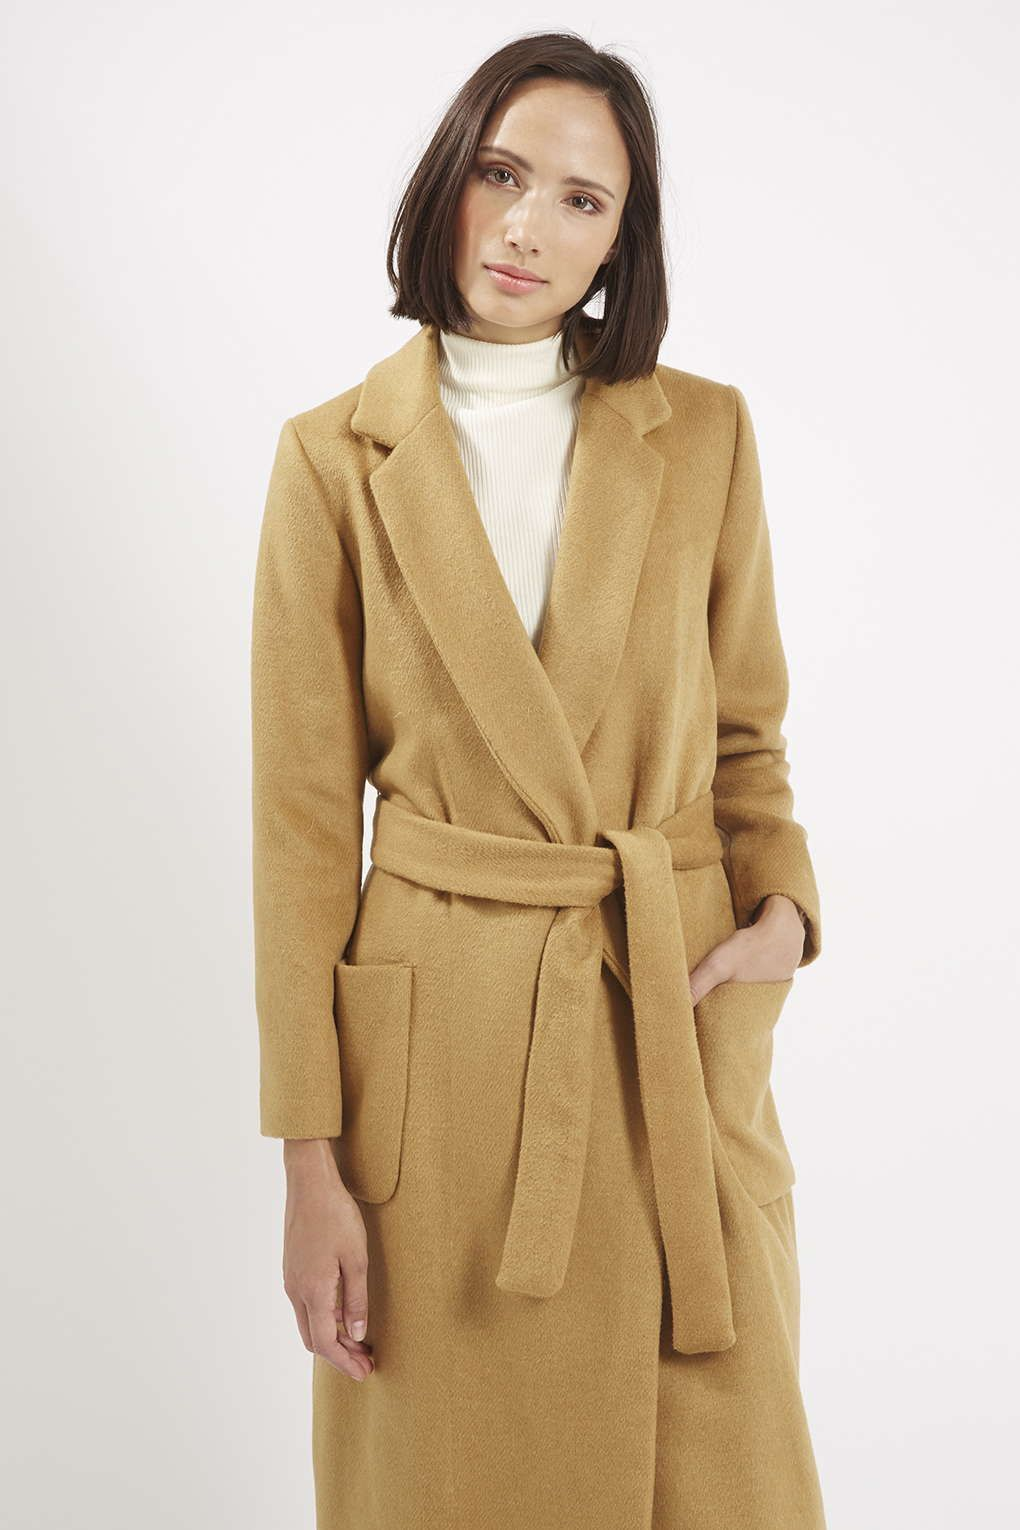 TALL Camel Slim Pocket Coat - Jackets & Coats - Clothing | Wool ...